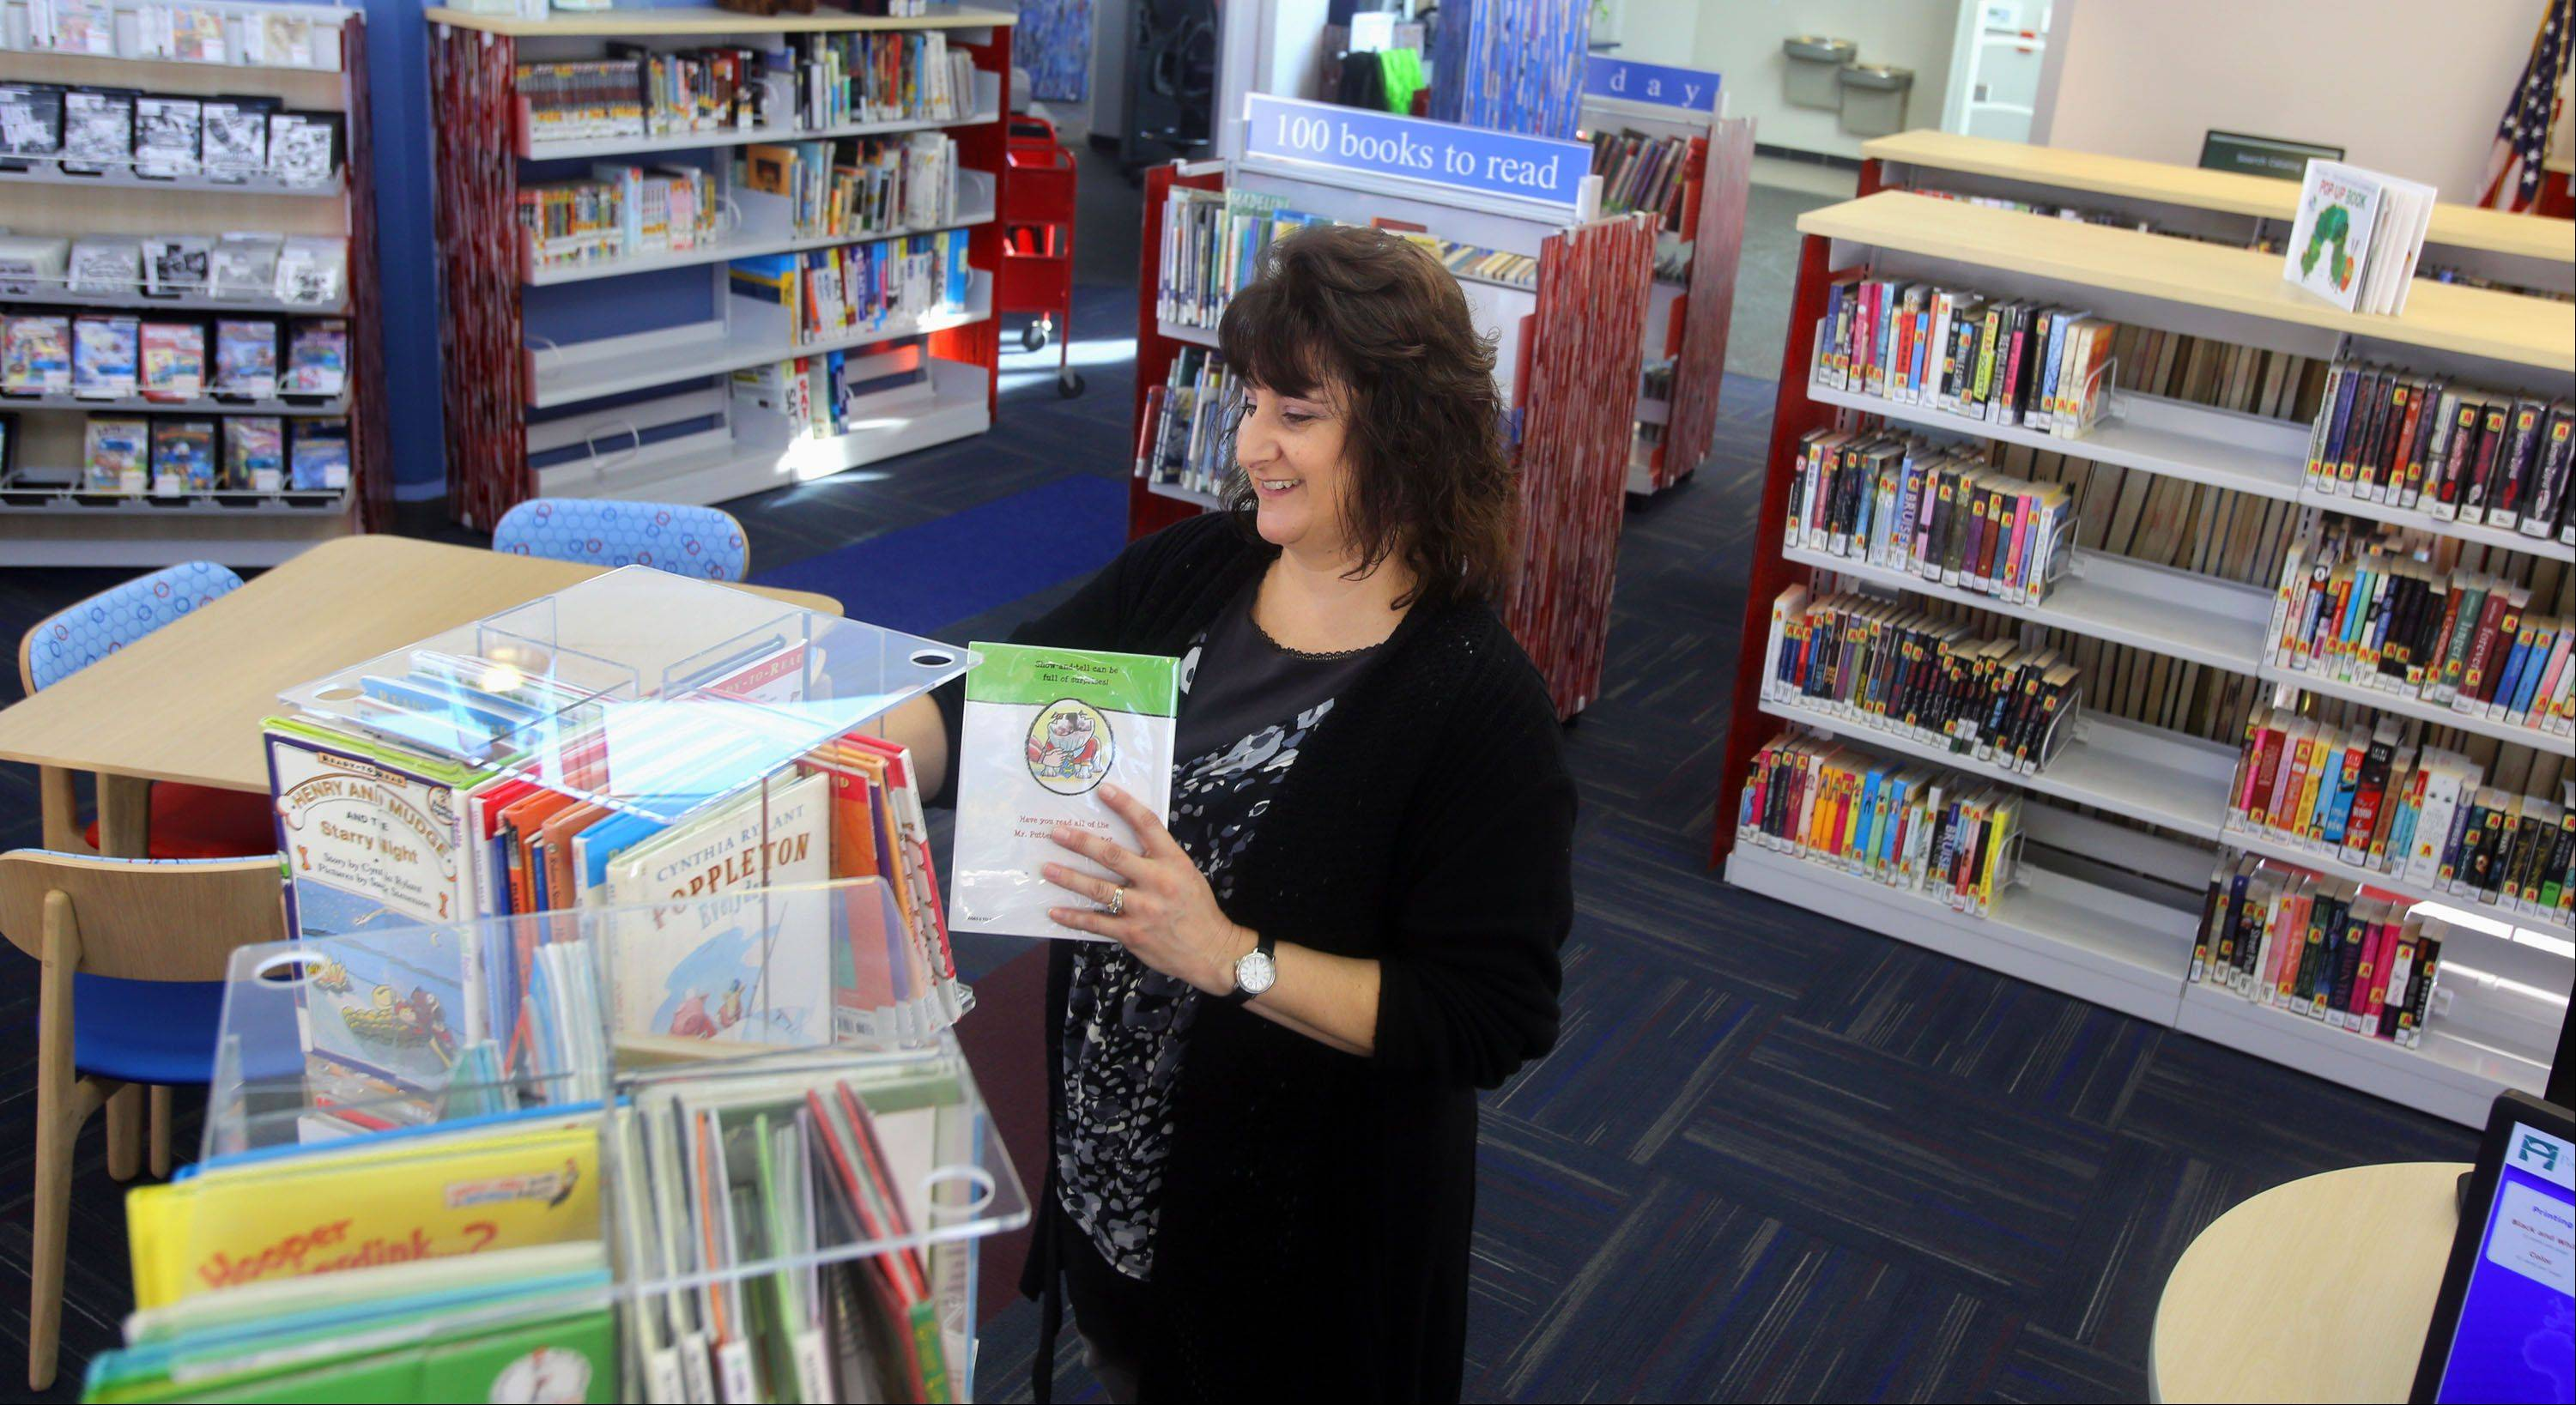 Children's programmer Lisa Orsini enjoys the $1.1 million renovation at the Poplar Creek Public Library District's Sonya Crenshaw branch in Hanover Park.